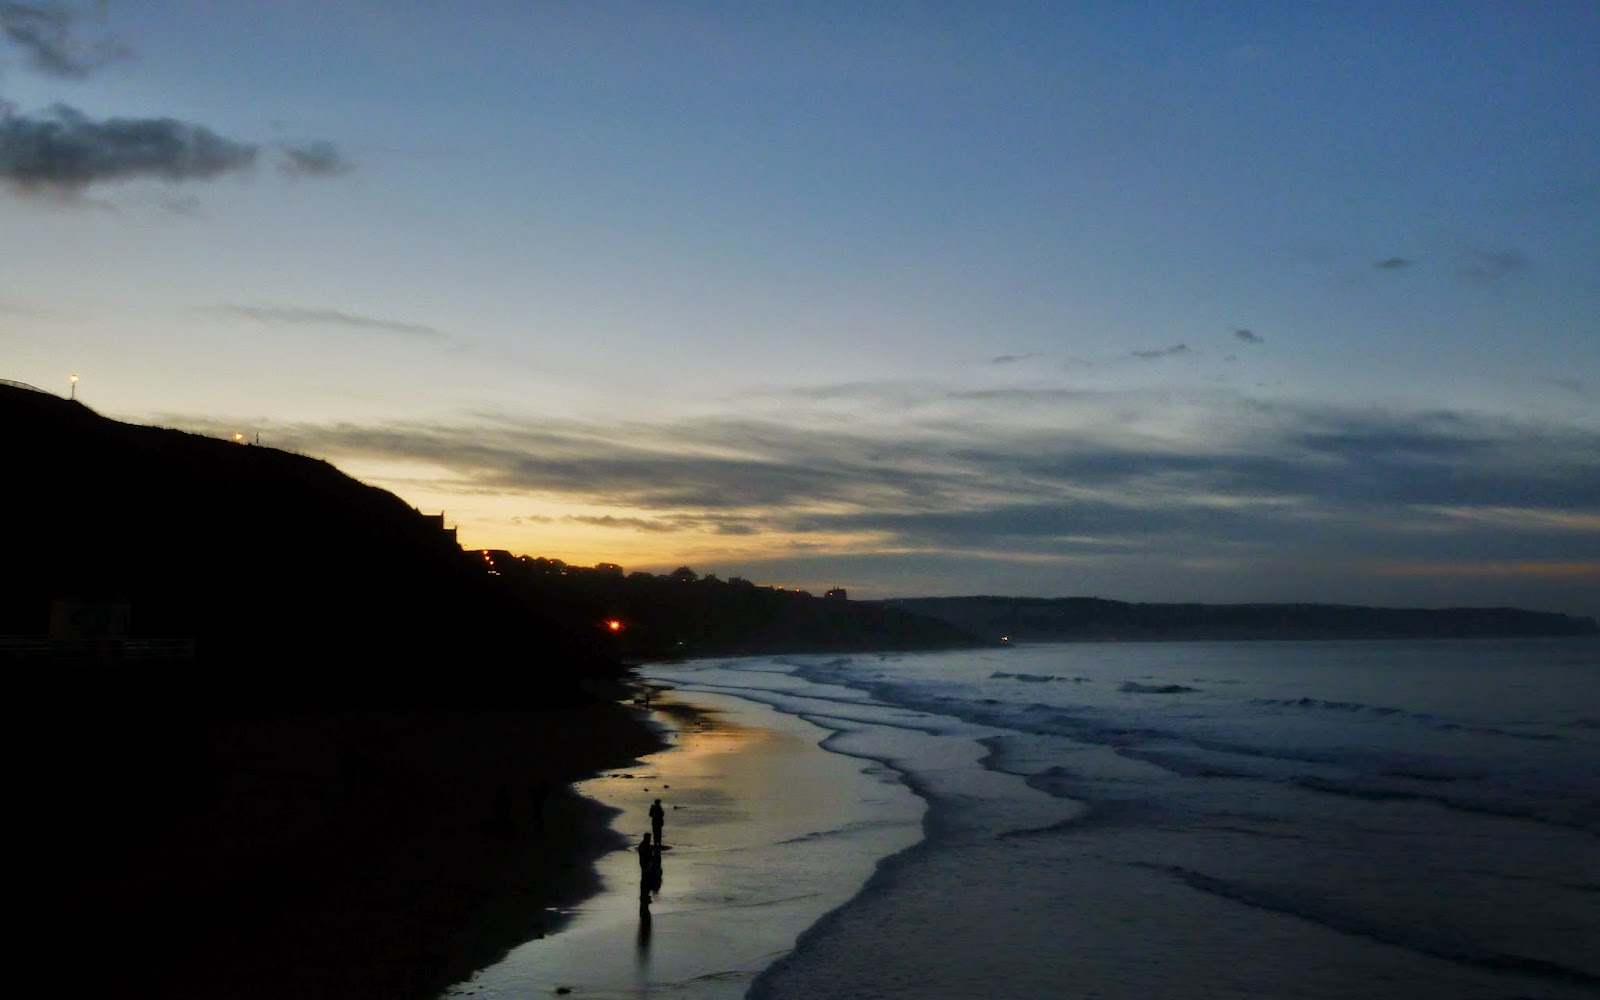 The beach, Whitby at sunset